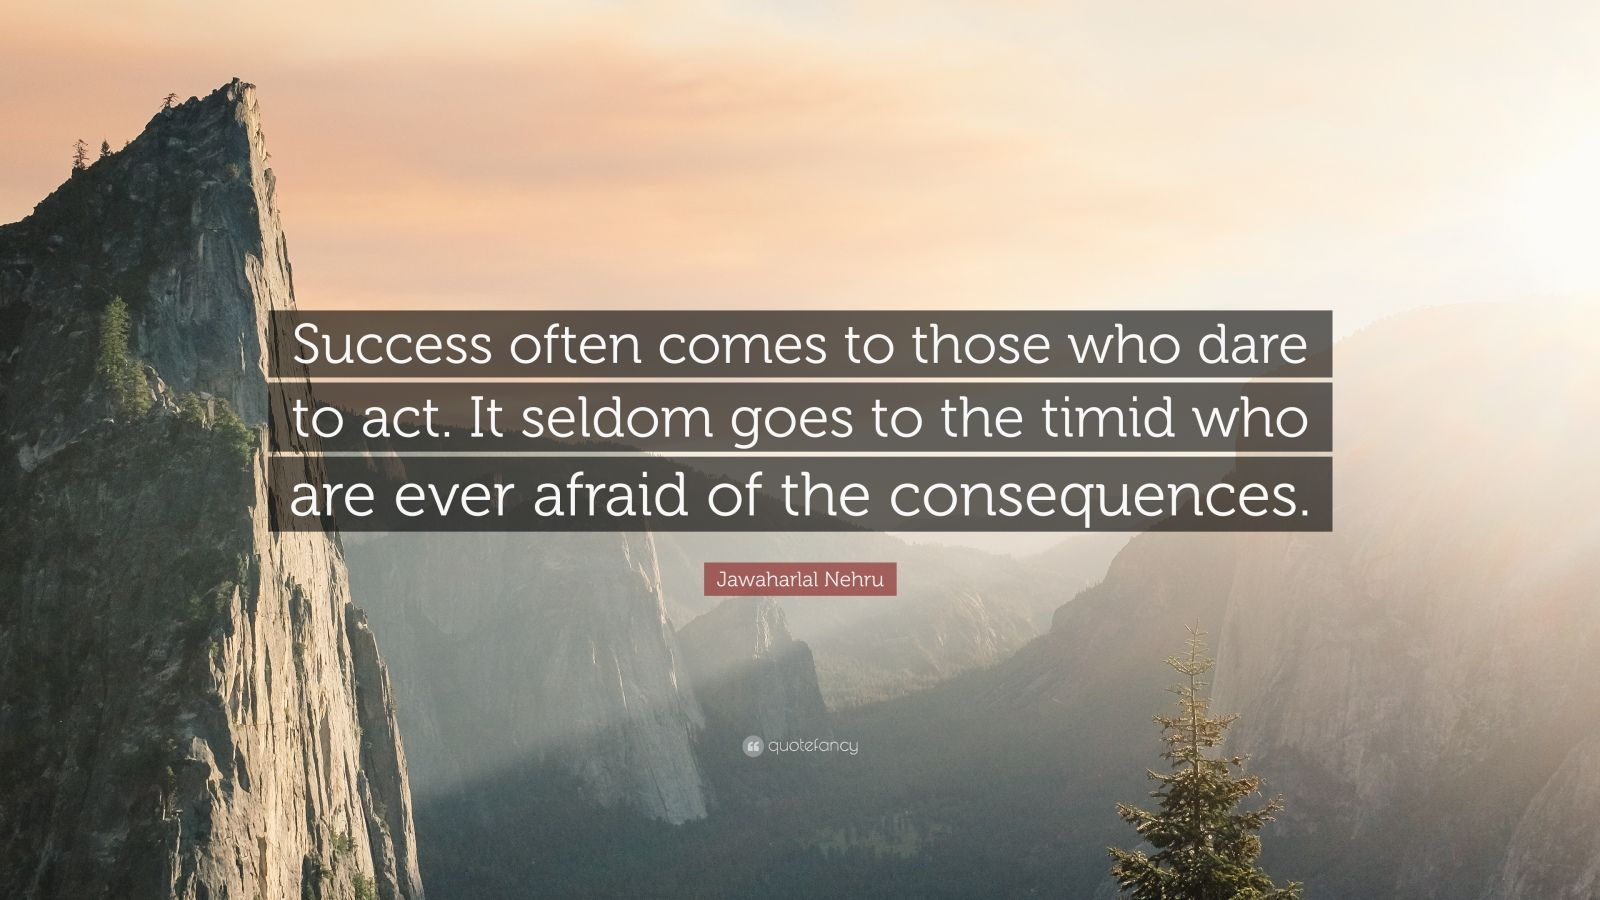 speech on success comes to those who dare Access the best success quotes you'll find some lines on life, hard work, failure, obstacles, business, team work other success sayings are famous, short, inspirational, funny, deep and wise.